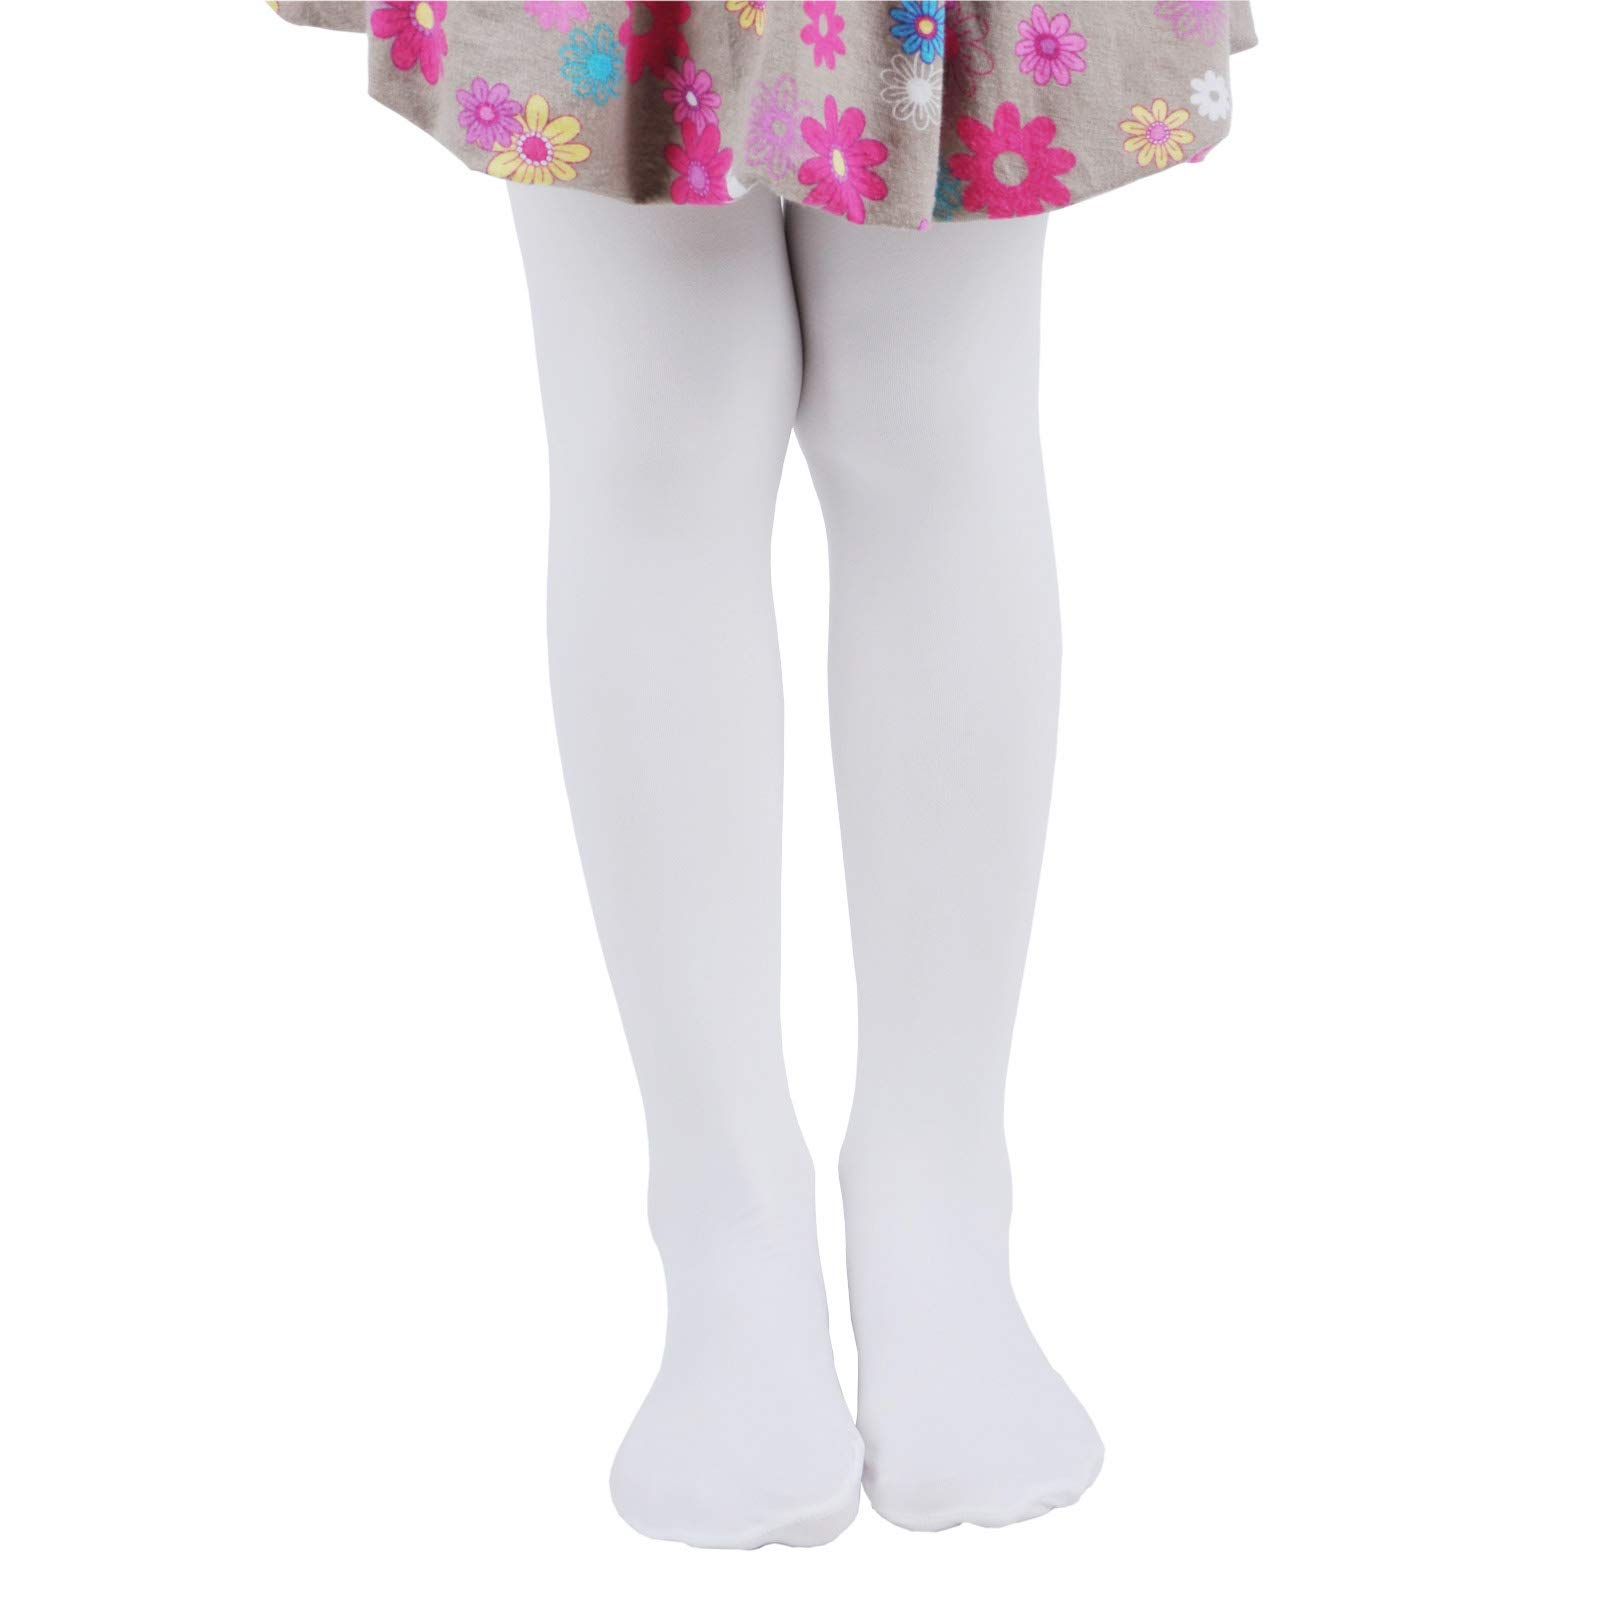 Butterfly Girls Microfiber Opaque Colored Tights